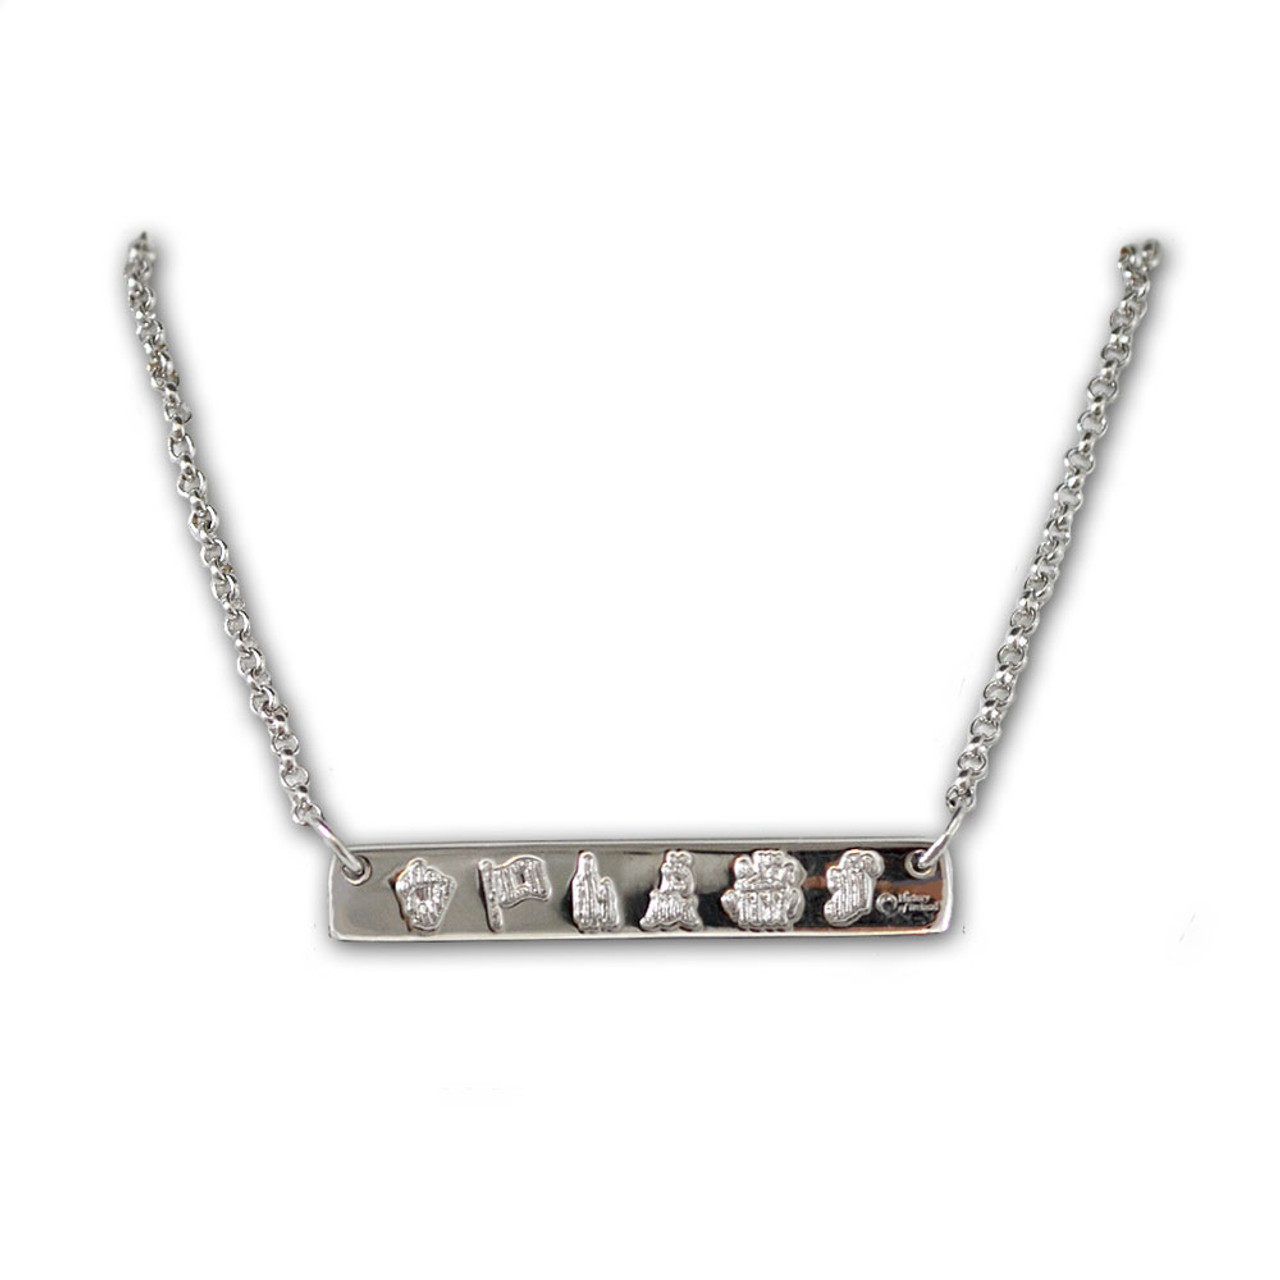 Symbols of Ireland Bar Necklace in Sterling Silver